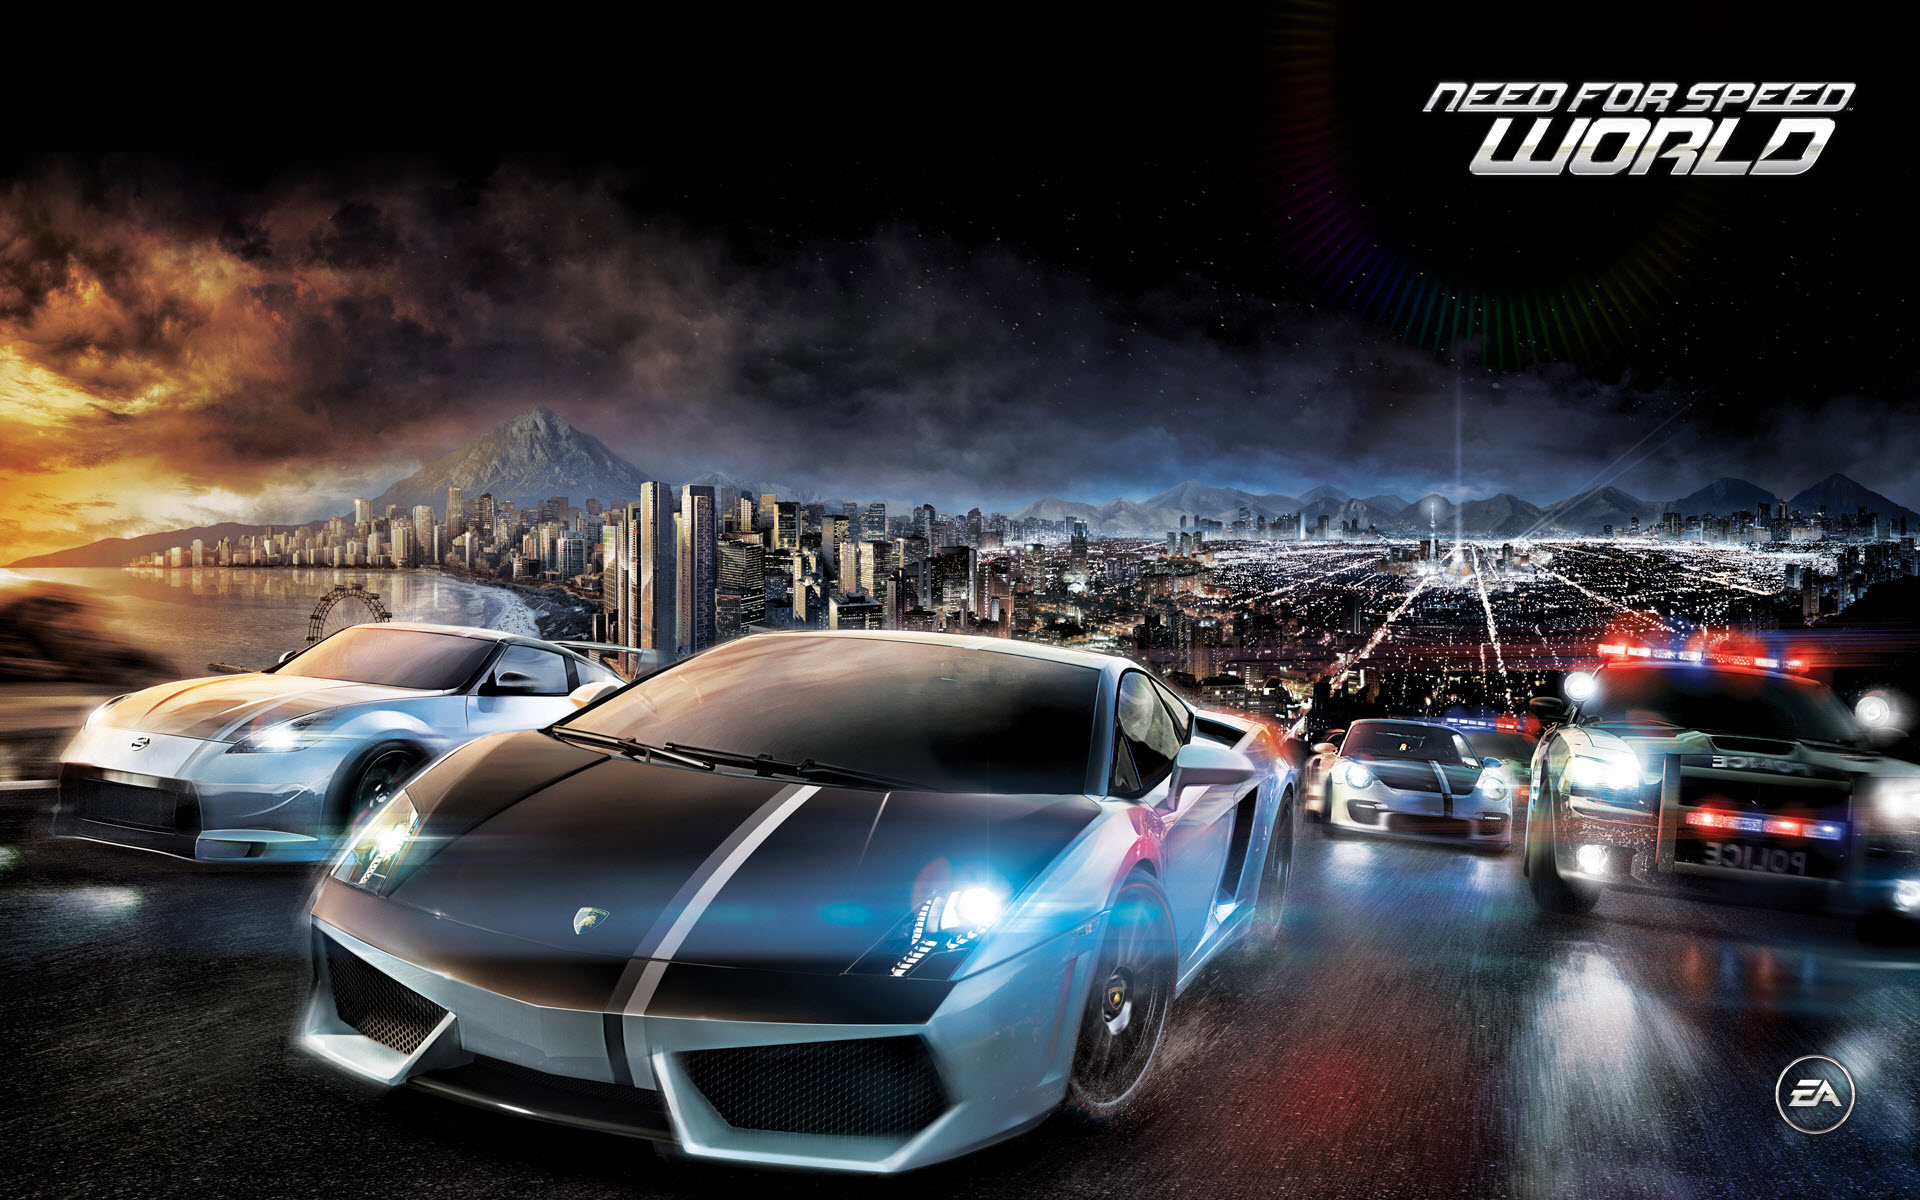 Need For Speed Most Wanted Hd Desktop Wallpaper High Definition